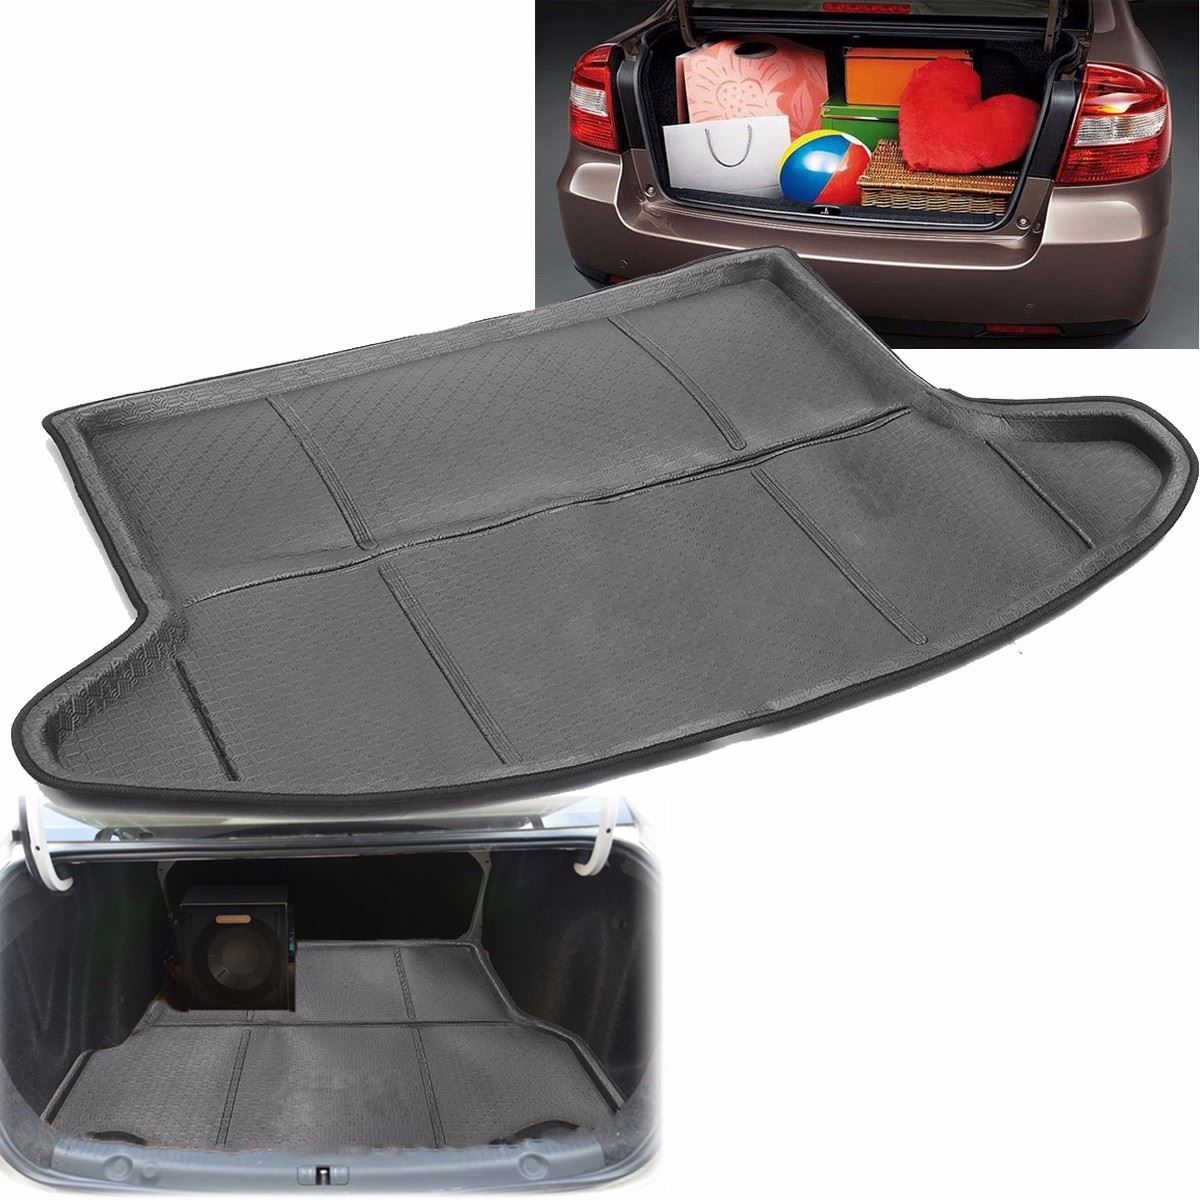 Auto Tailcase Mat Mantle Rear Trunk Cargo Mat for Mazda /CX-5 2013 2014 2015 2017 Black